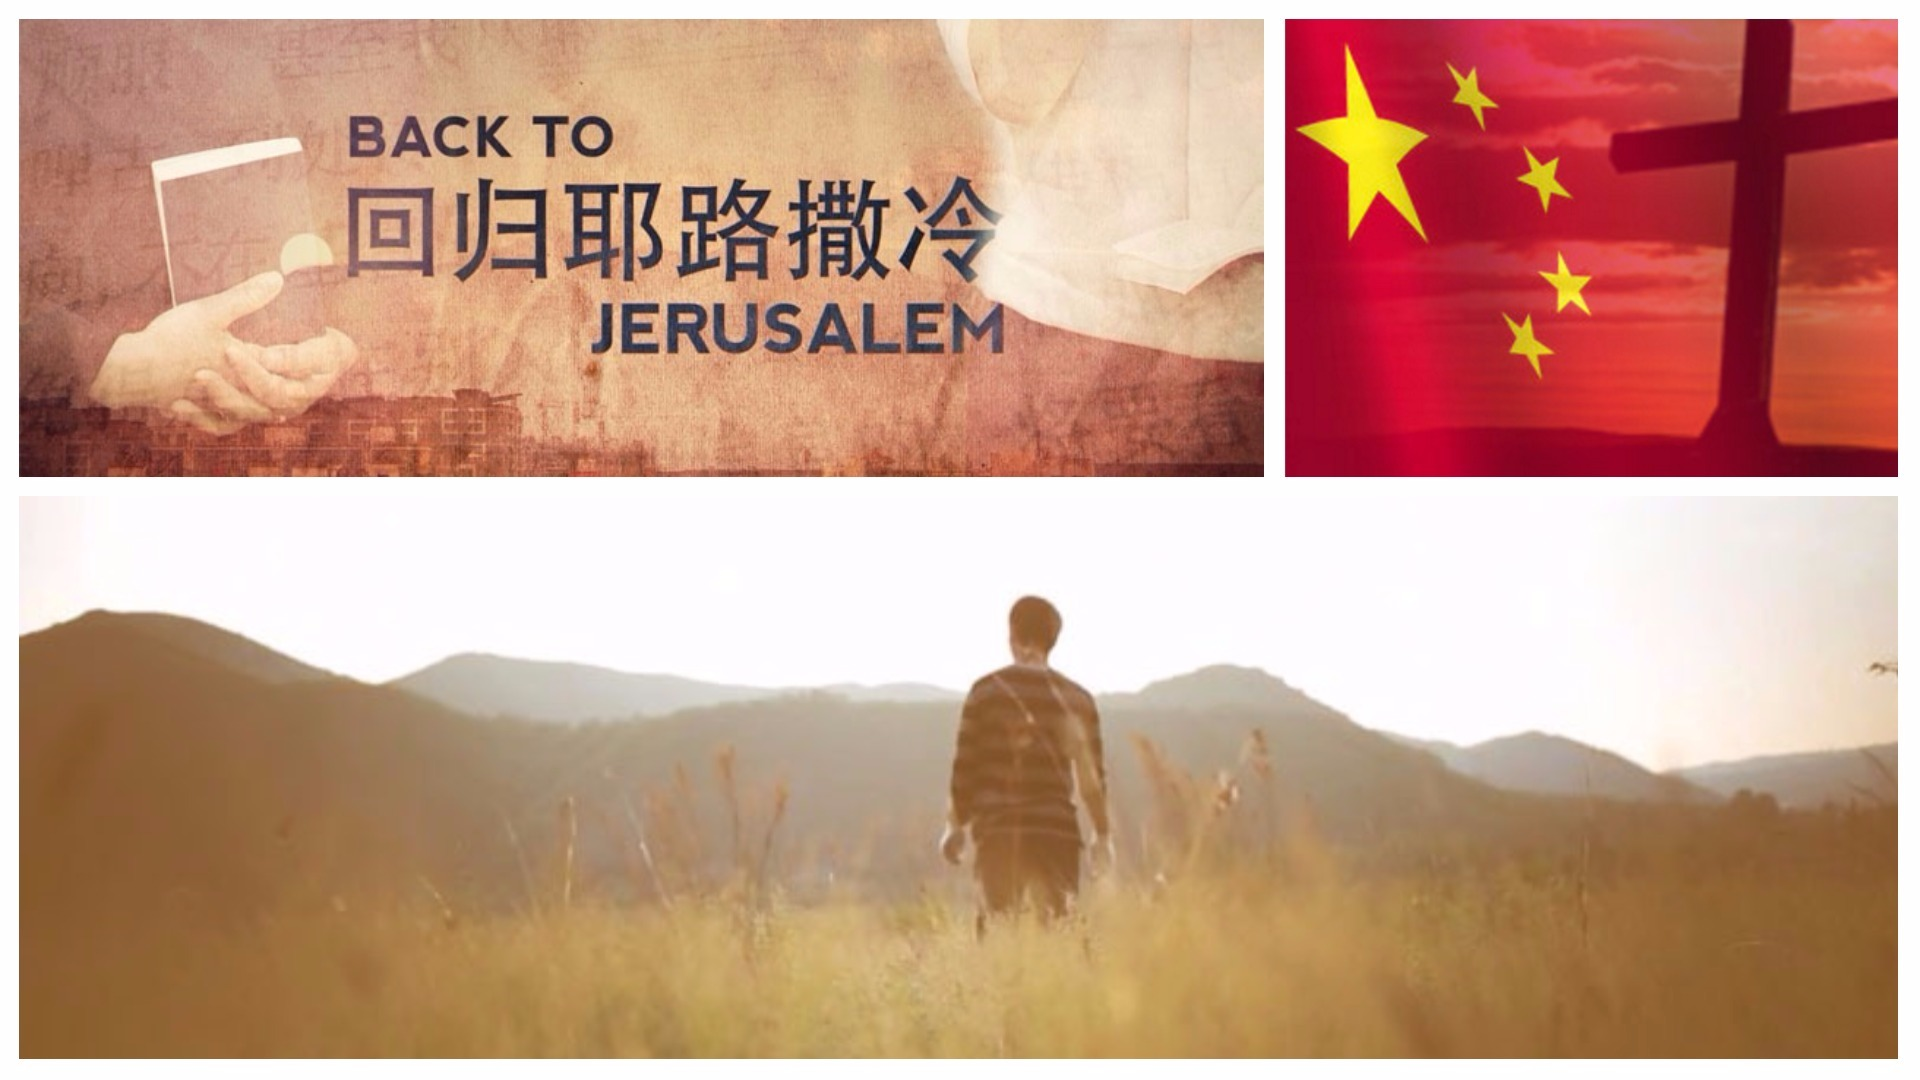 THE CHINA VISIONS: Finishing the Commission (taking the gospel through the 10/40 window)